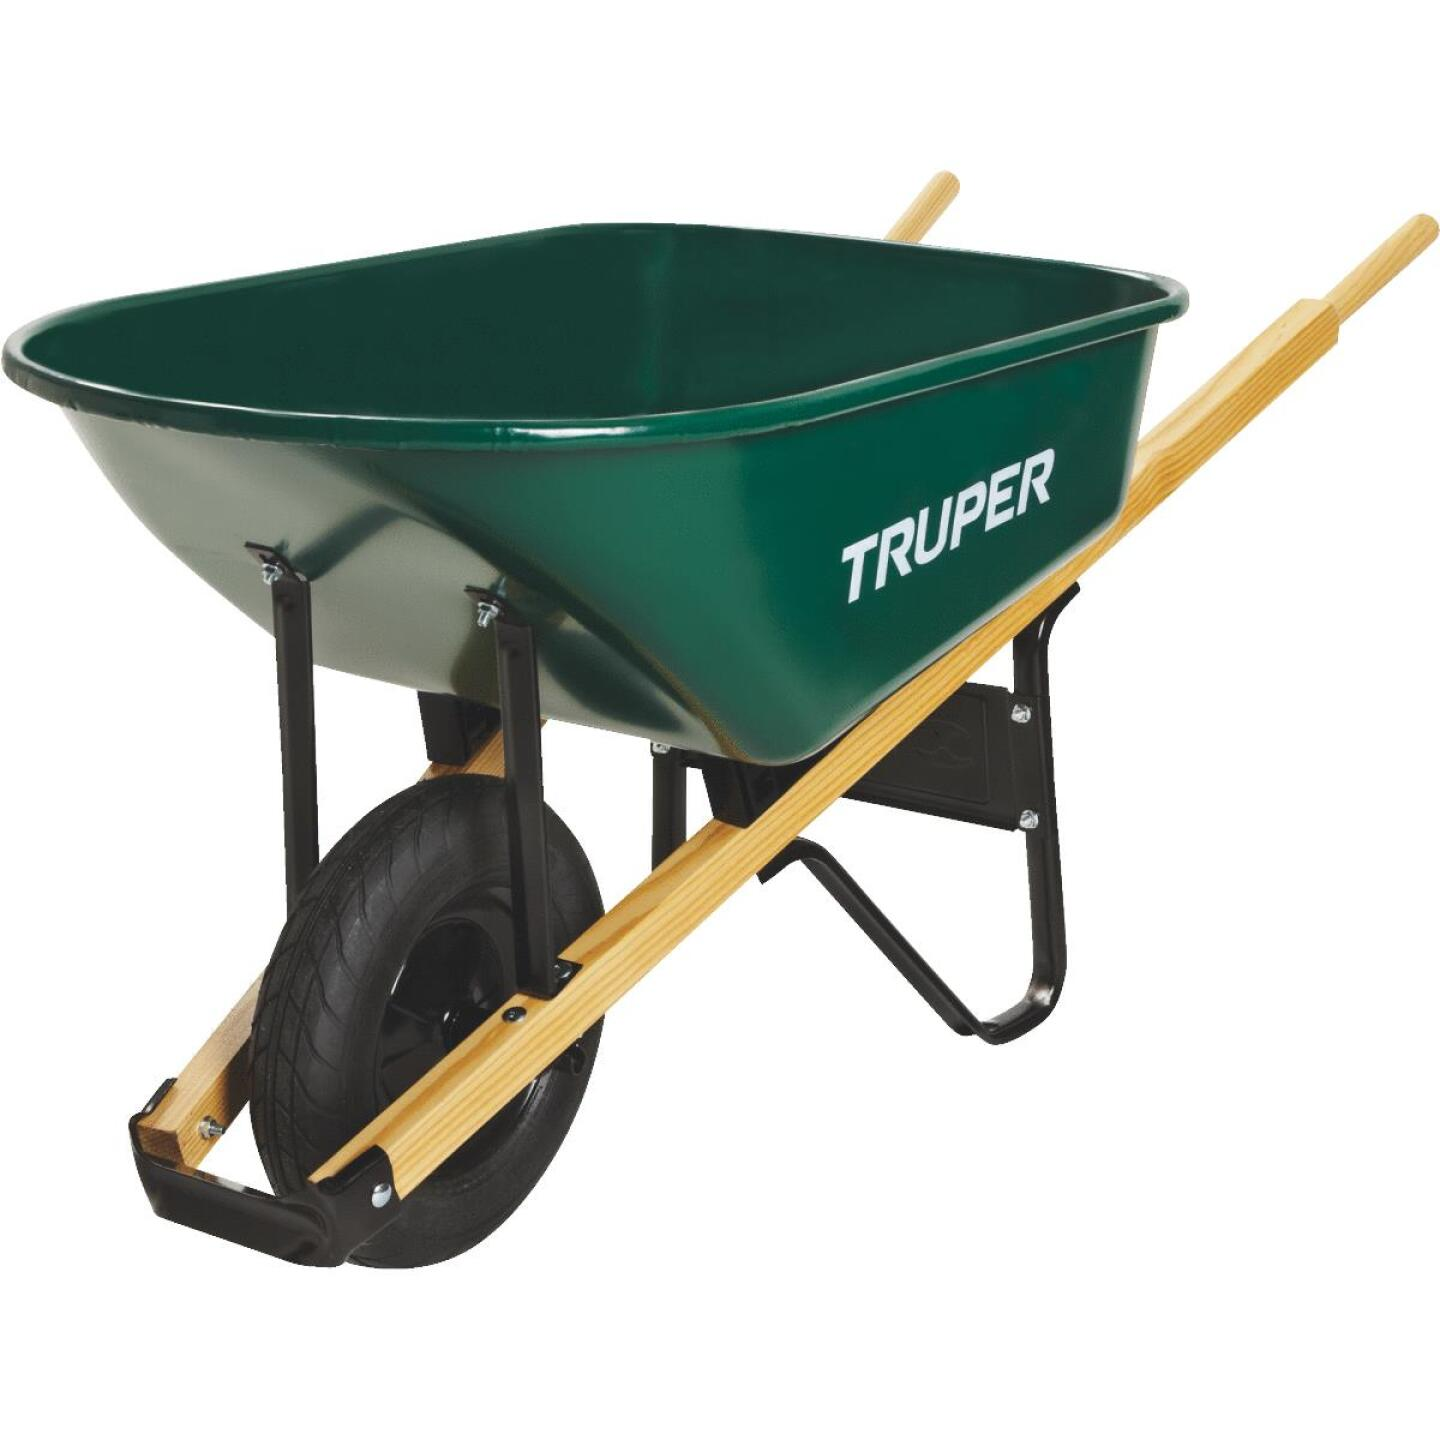 Truper 6 Cu. Ft. Steel Wheelbarrow Image 2